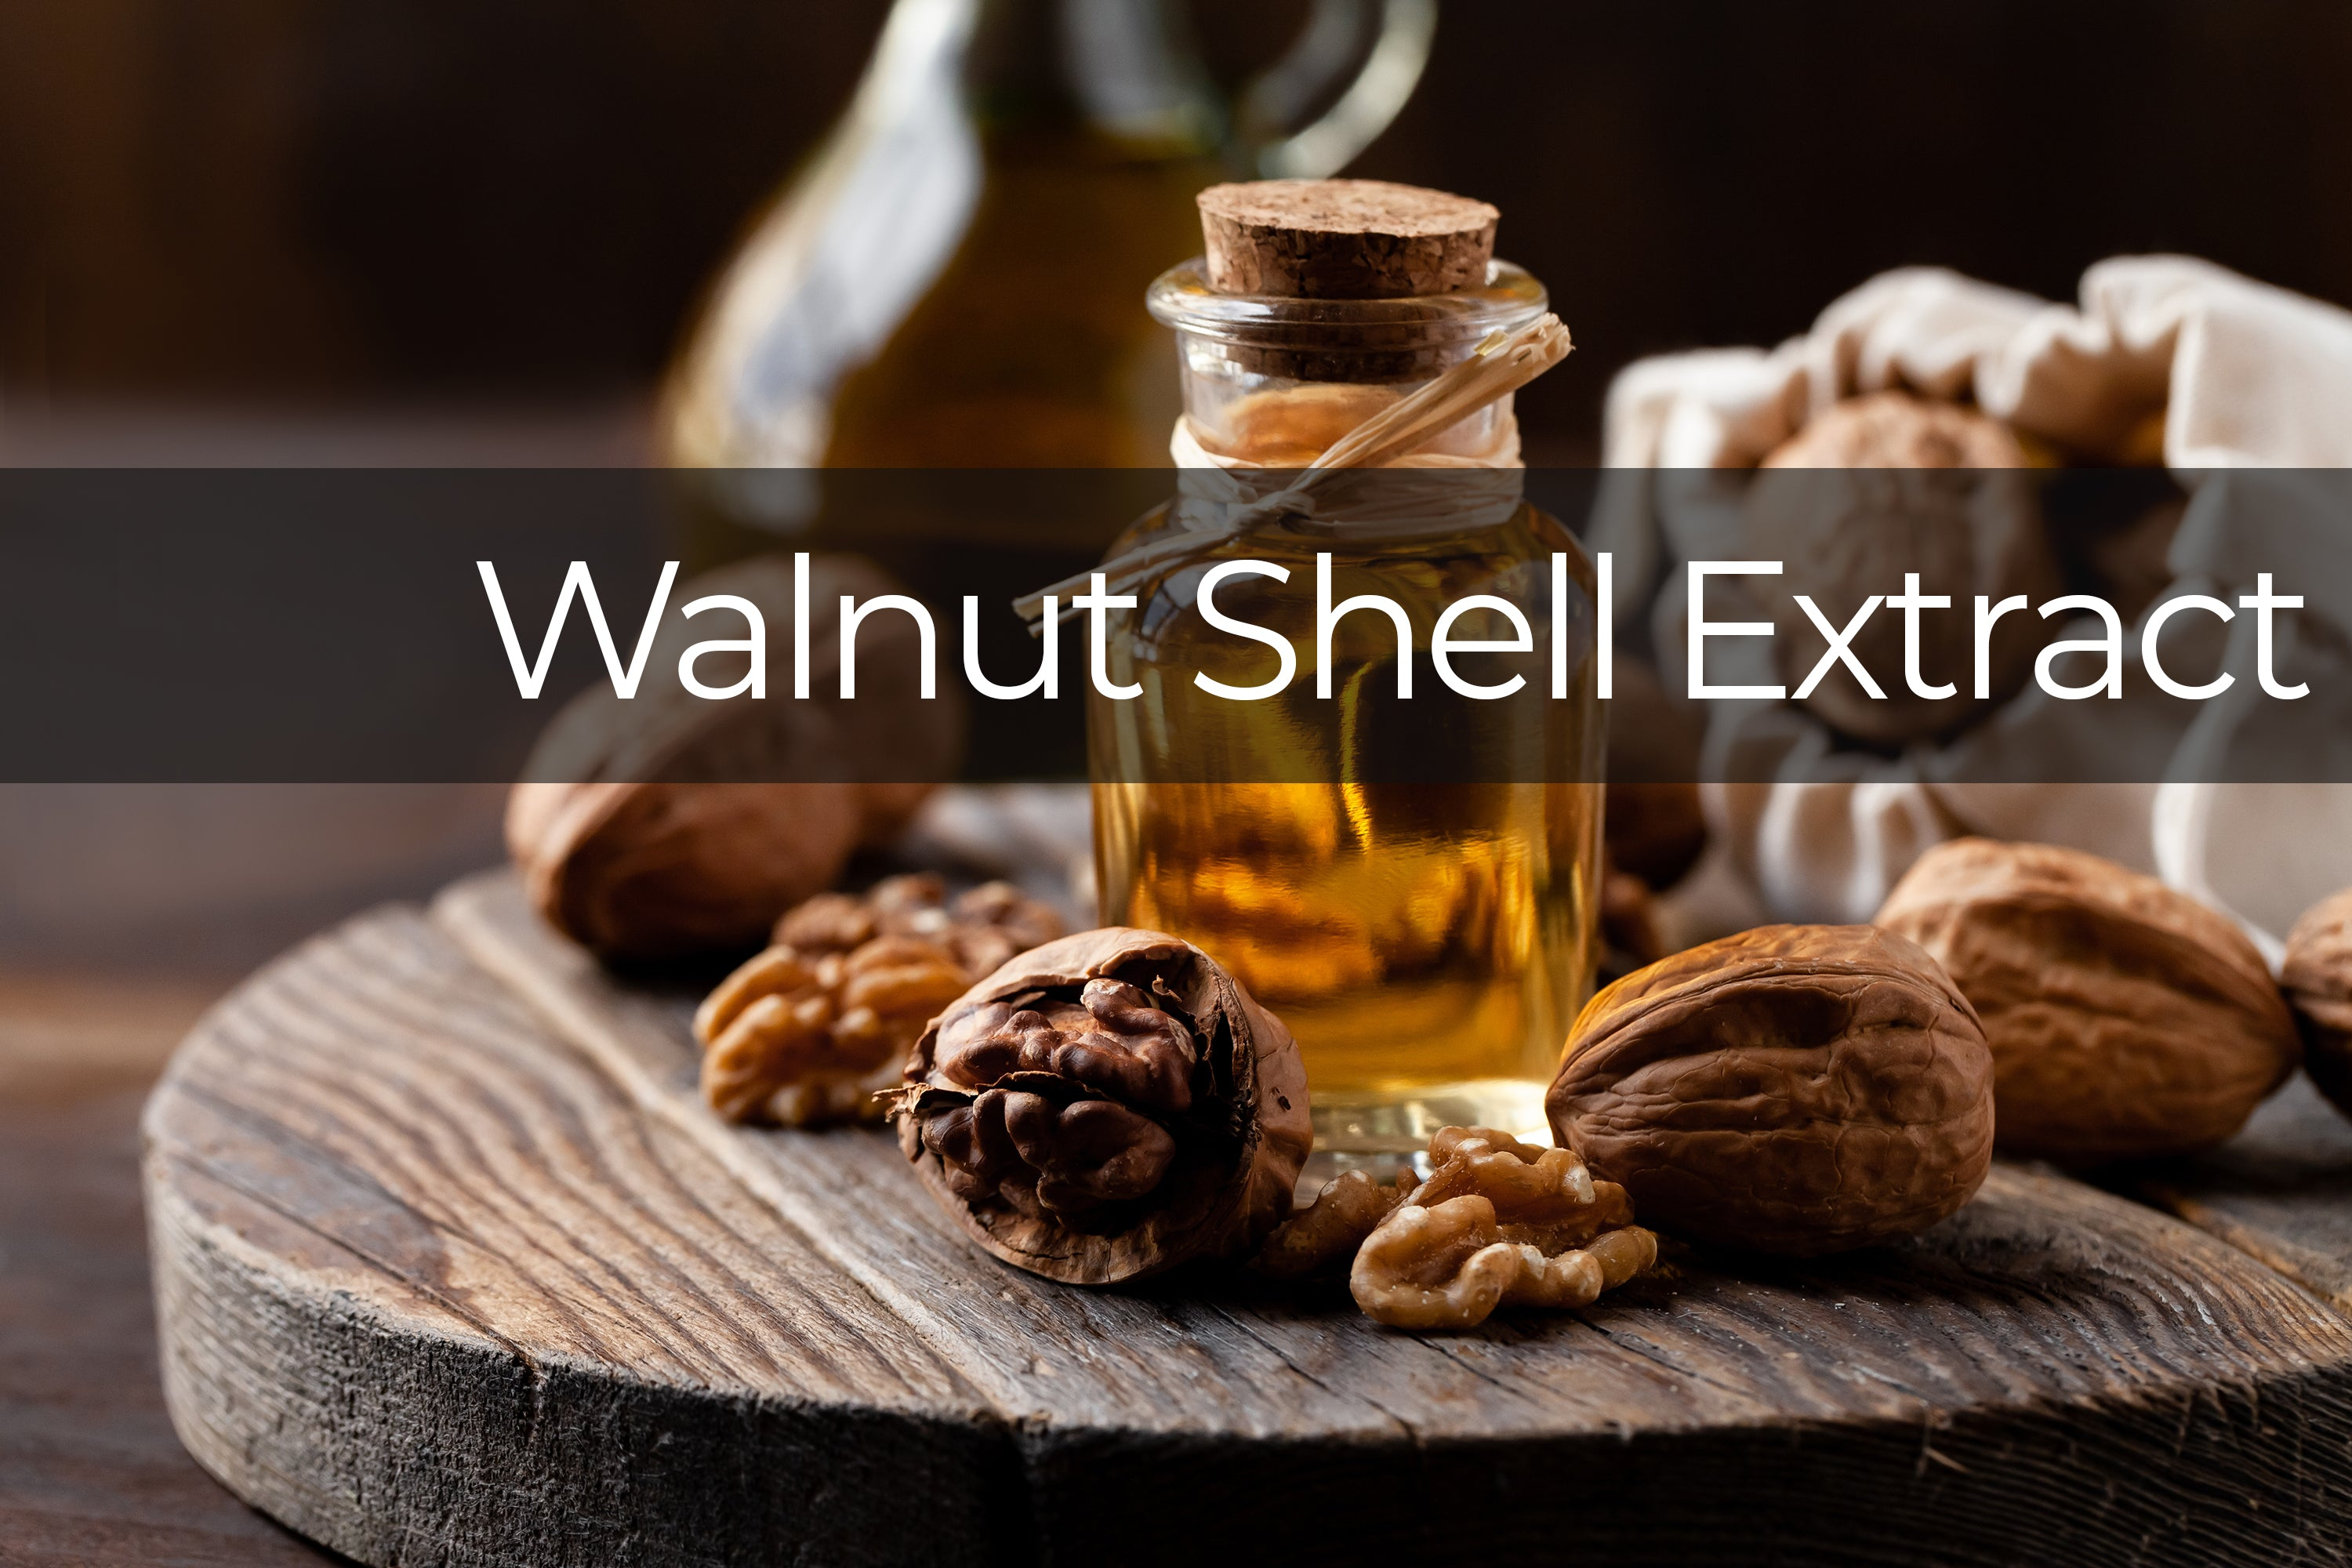 Prismax Ingredient: Walnut Shell Extract